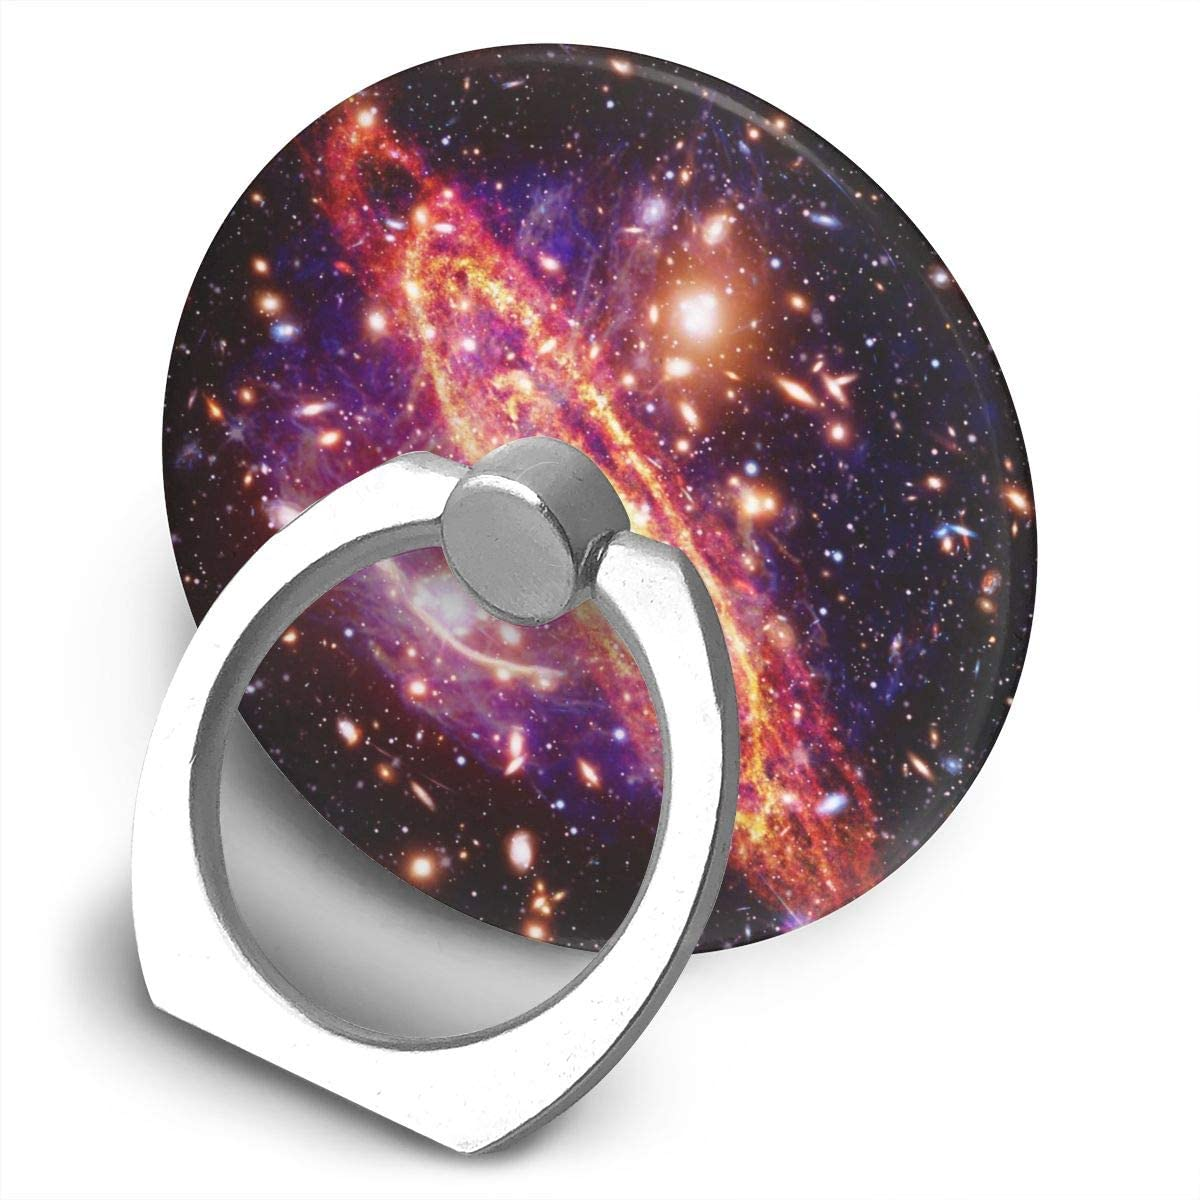 Universal Phone Ring Holder Marvellous Chaotic Space Galaxy Round Cell Phone Ring Stand Adjustable 360°Rotation Finger Kickstand Grip-Silver Mobile Phone Stand for Women Kids Men Ladies Smartphones